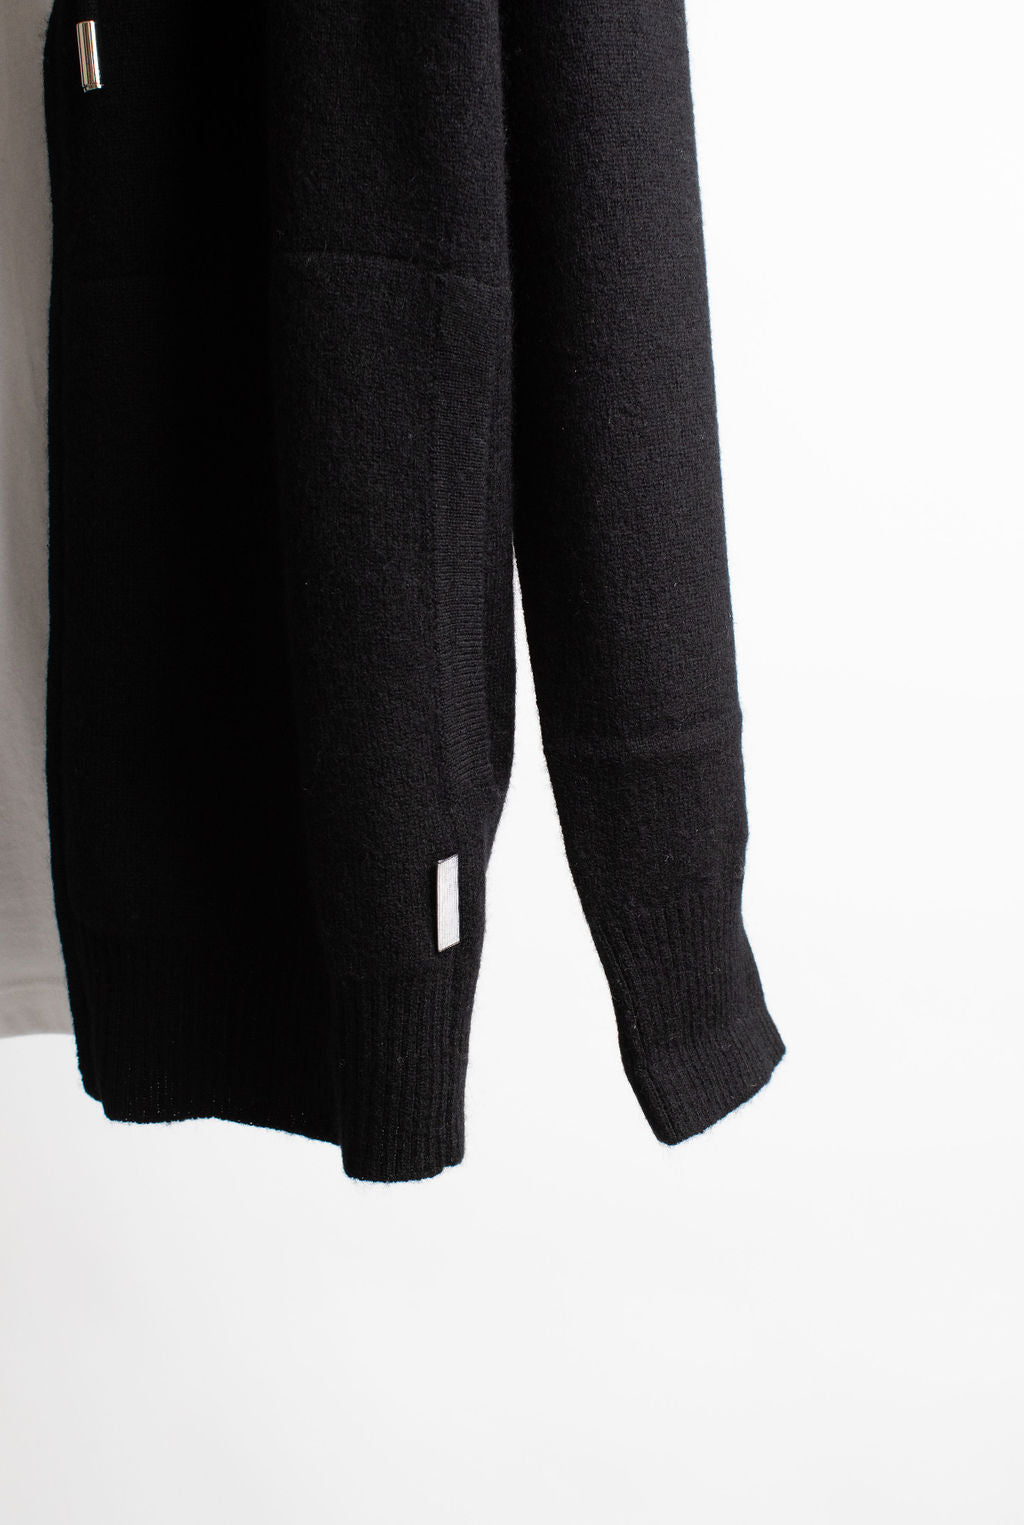 Hank-Perfect-Cashmere-Latham-Zip-Hoodie-Black